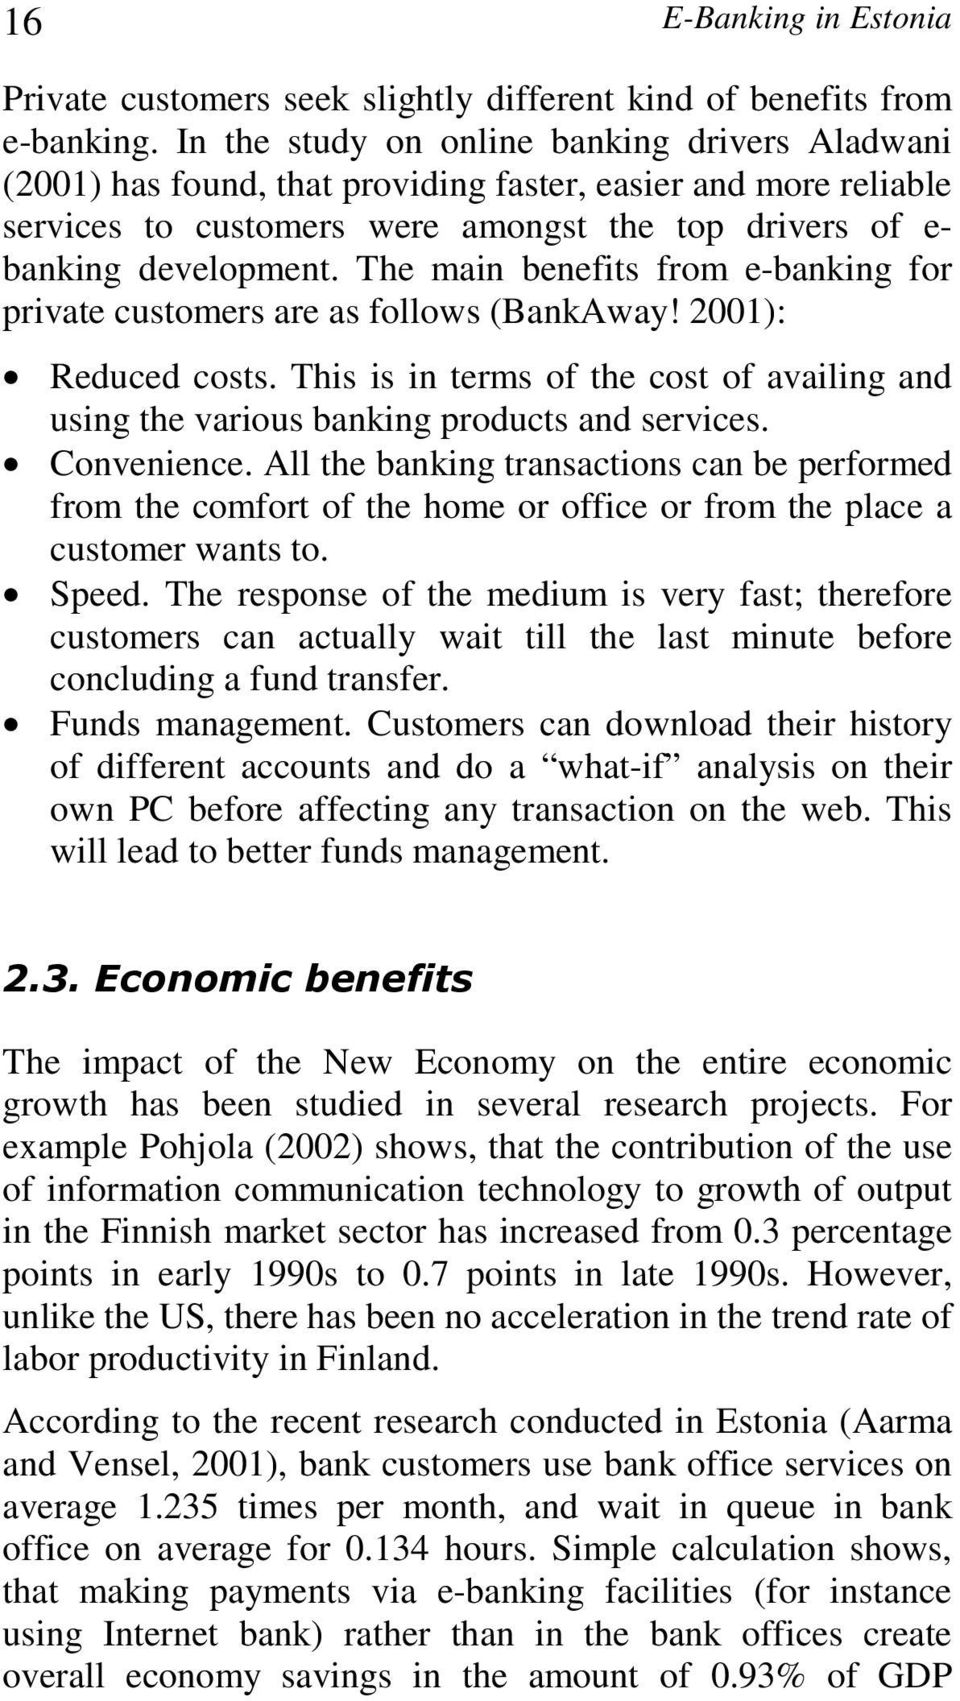 The main benefits from e-banking for private customers are as follows (BankAway! 2001): Reduced costs. This is in terms of the cost of availing and using the various banking products and services.